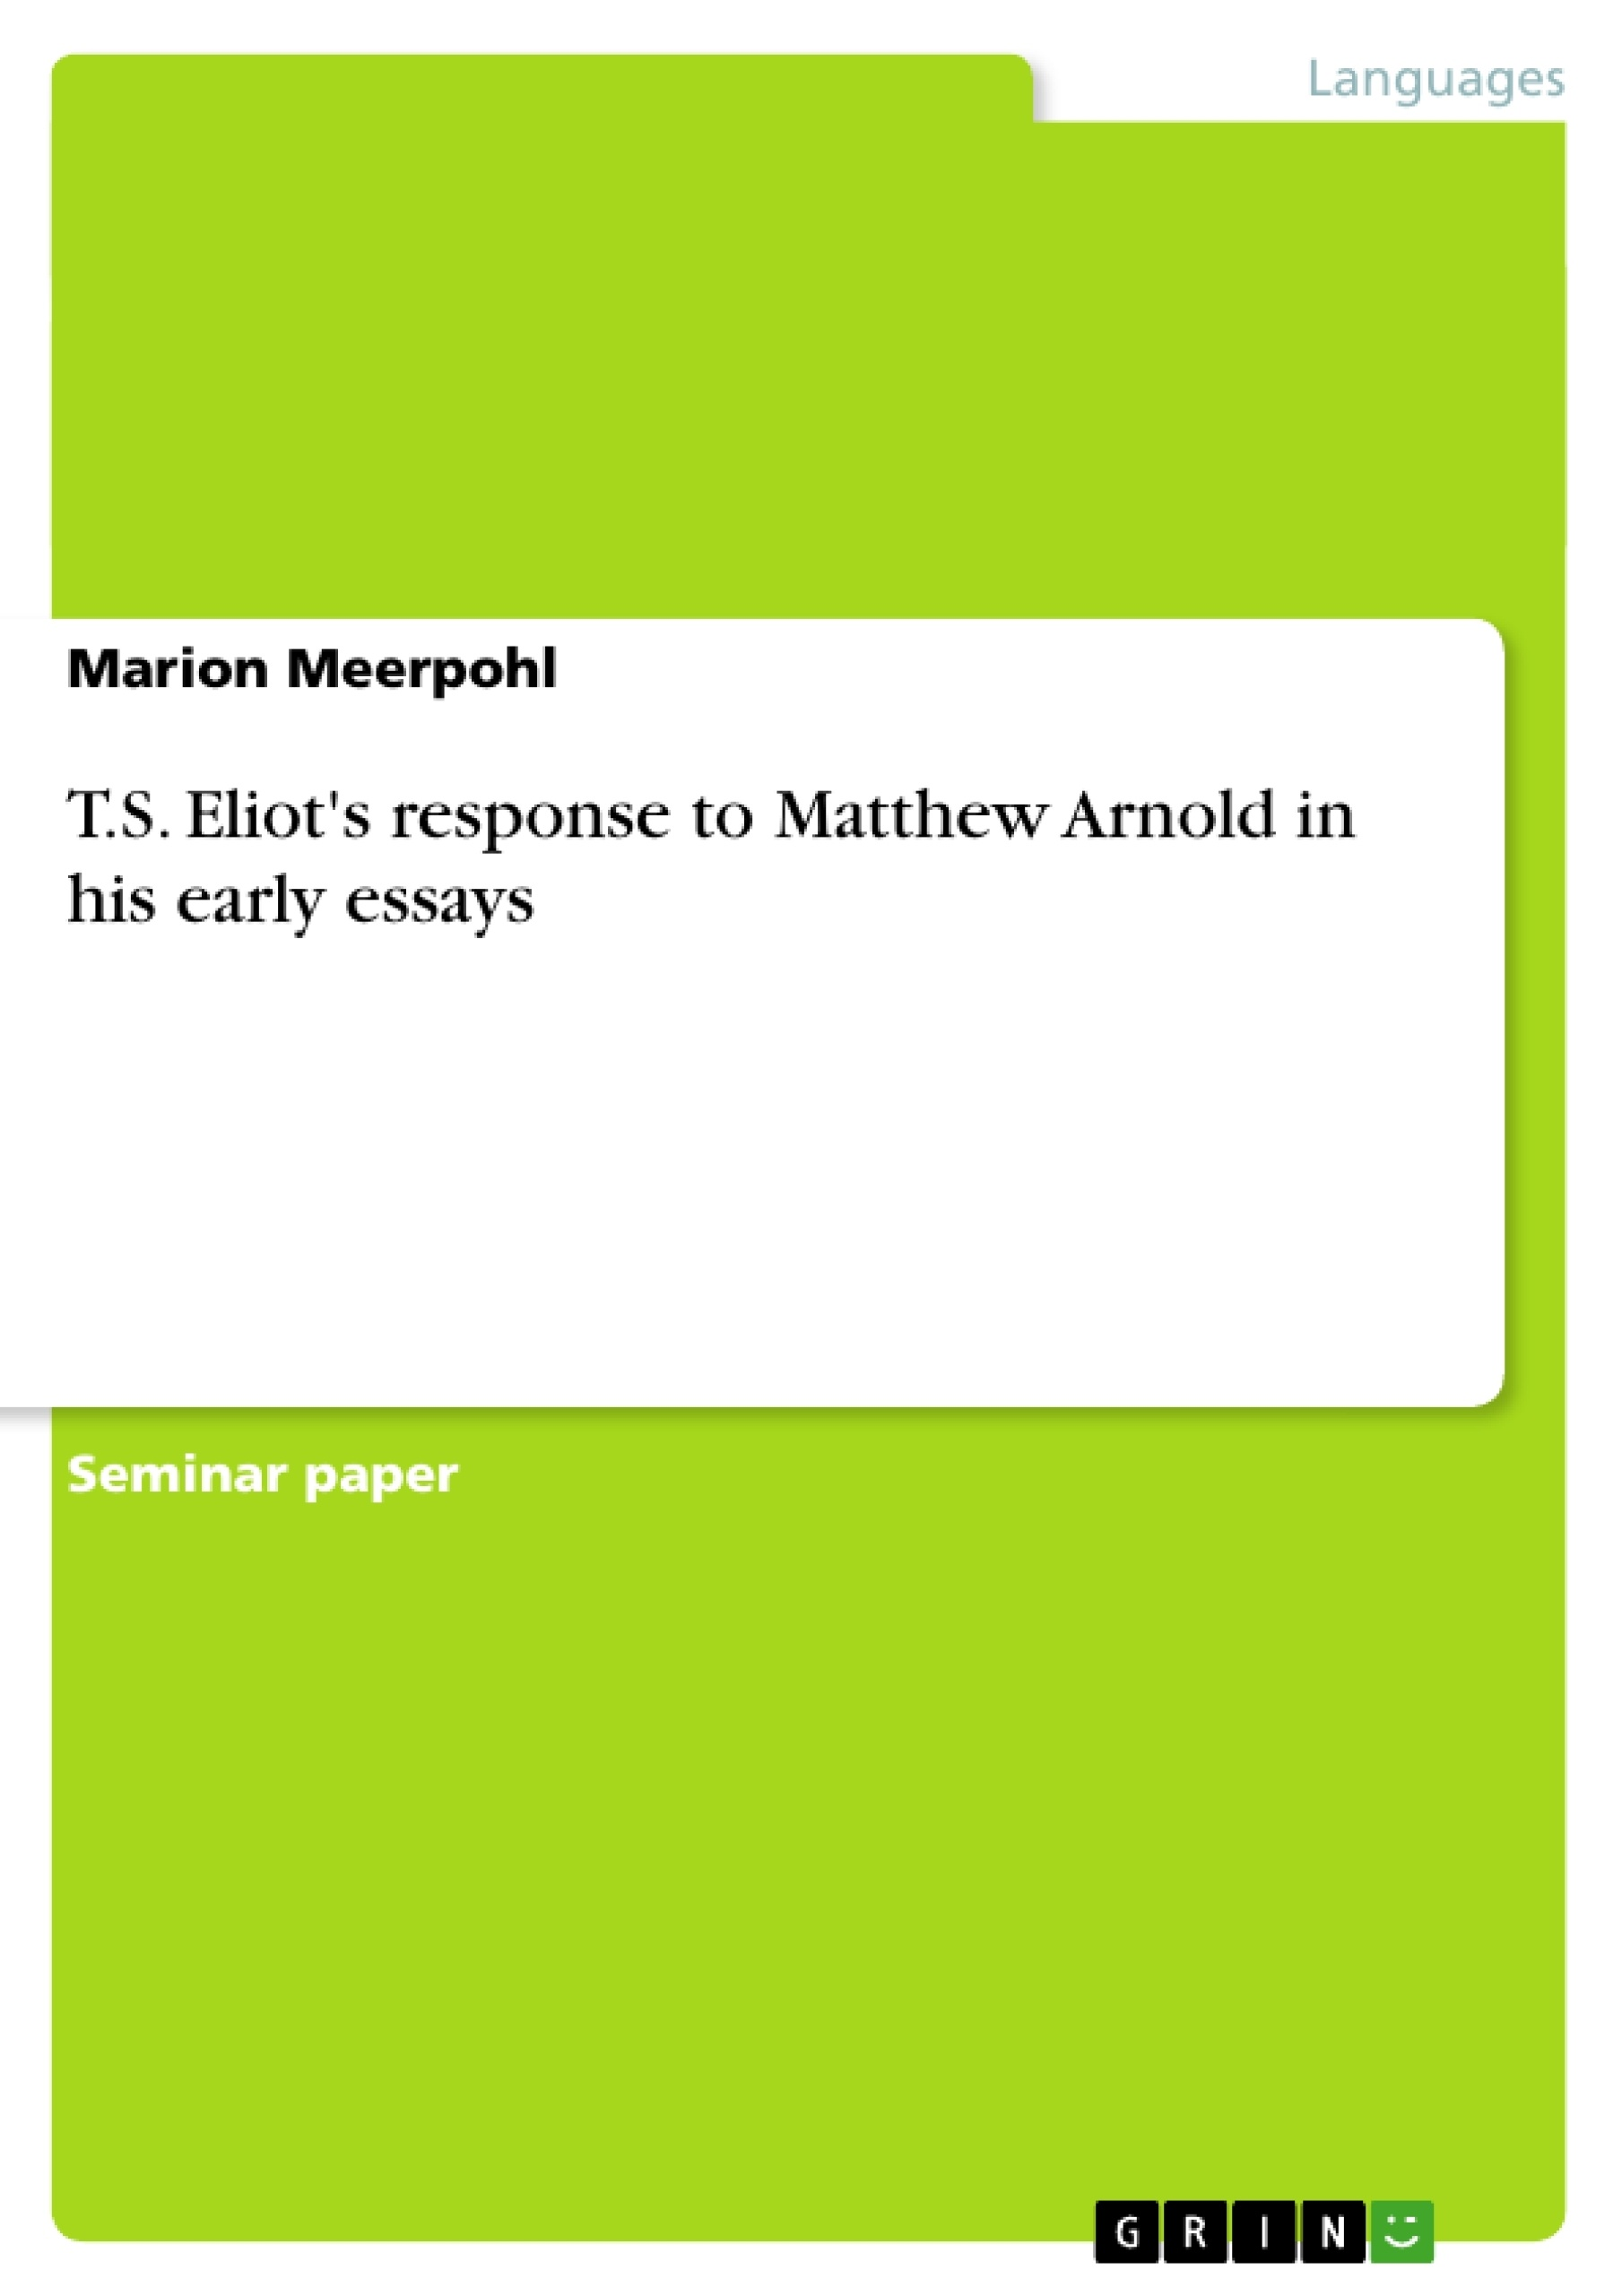 t s eliot s response to matthew arnold in his early essays  upload your own papers earn money and win an iphone x